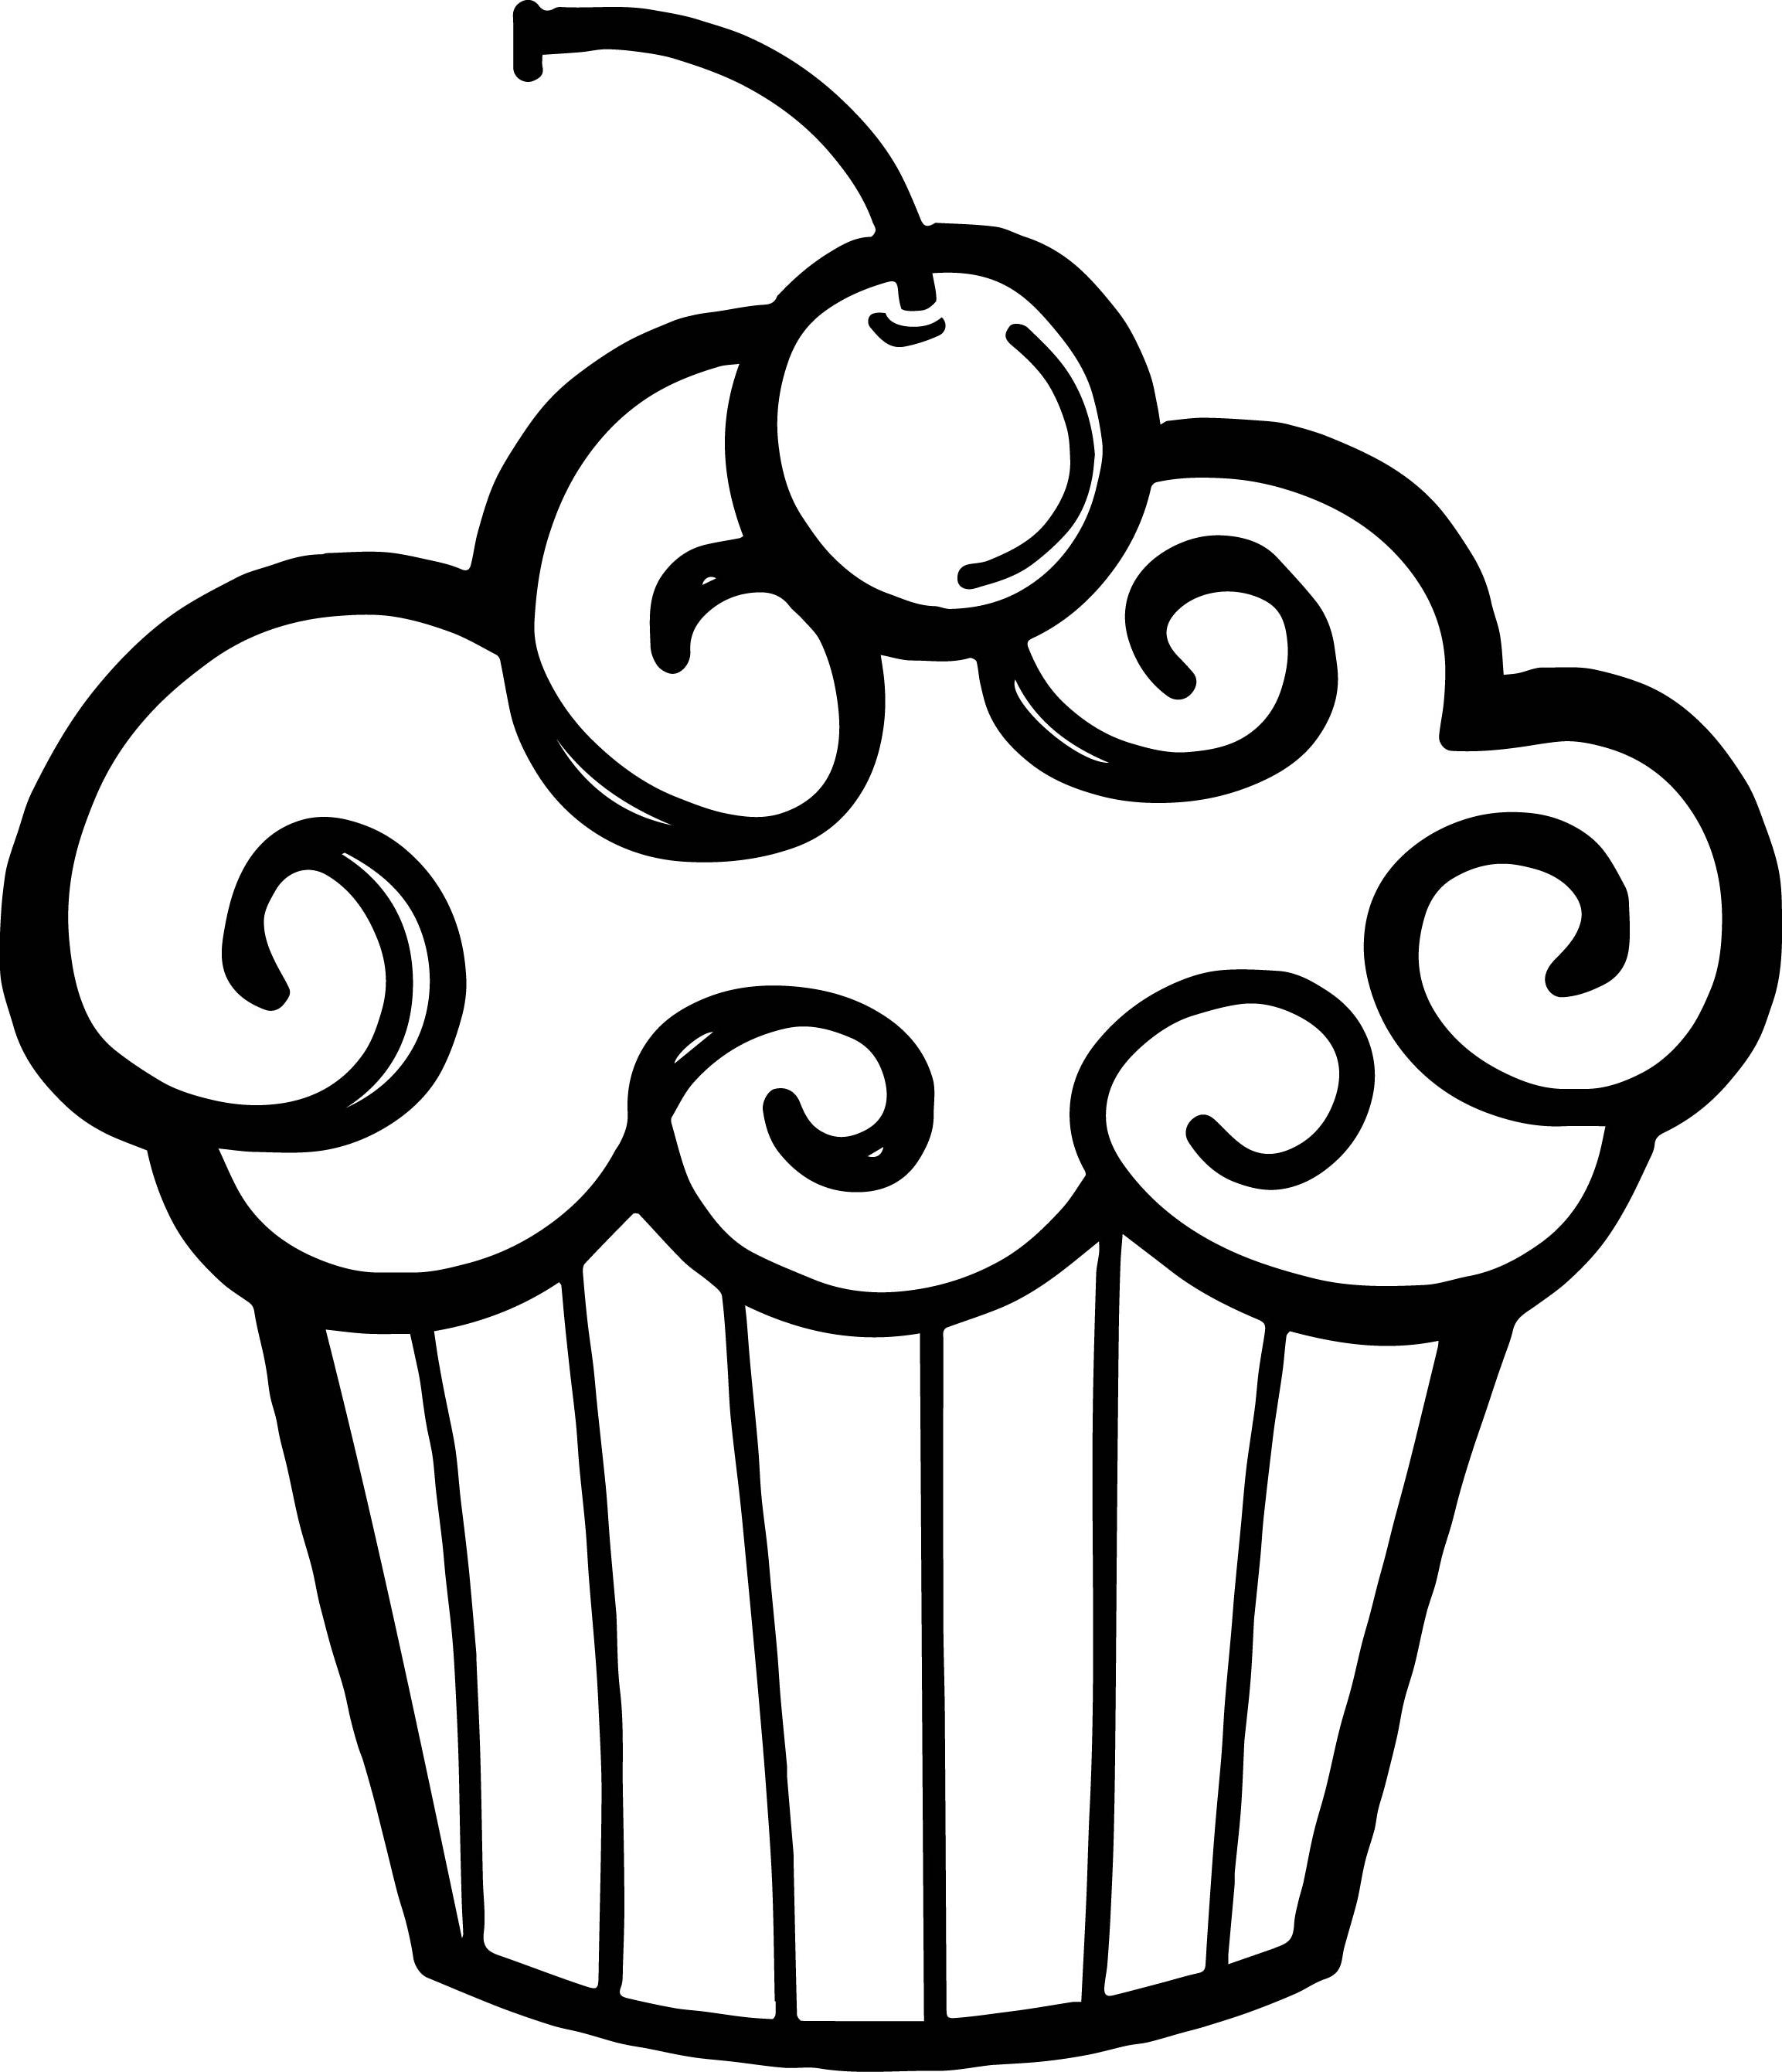 Free Cupcake Clipart Black And White